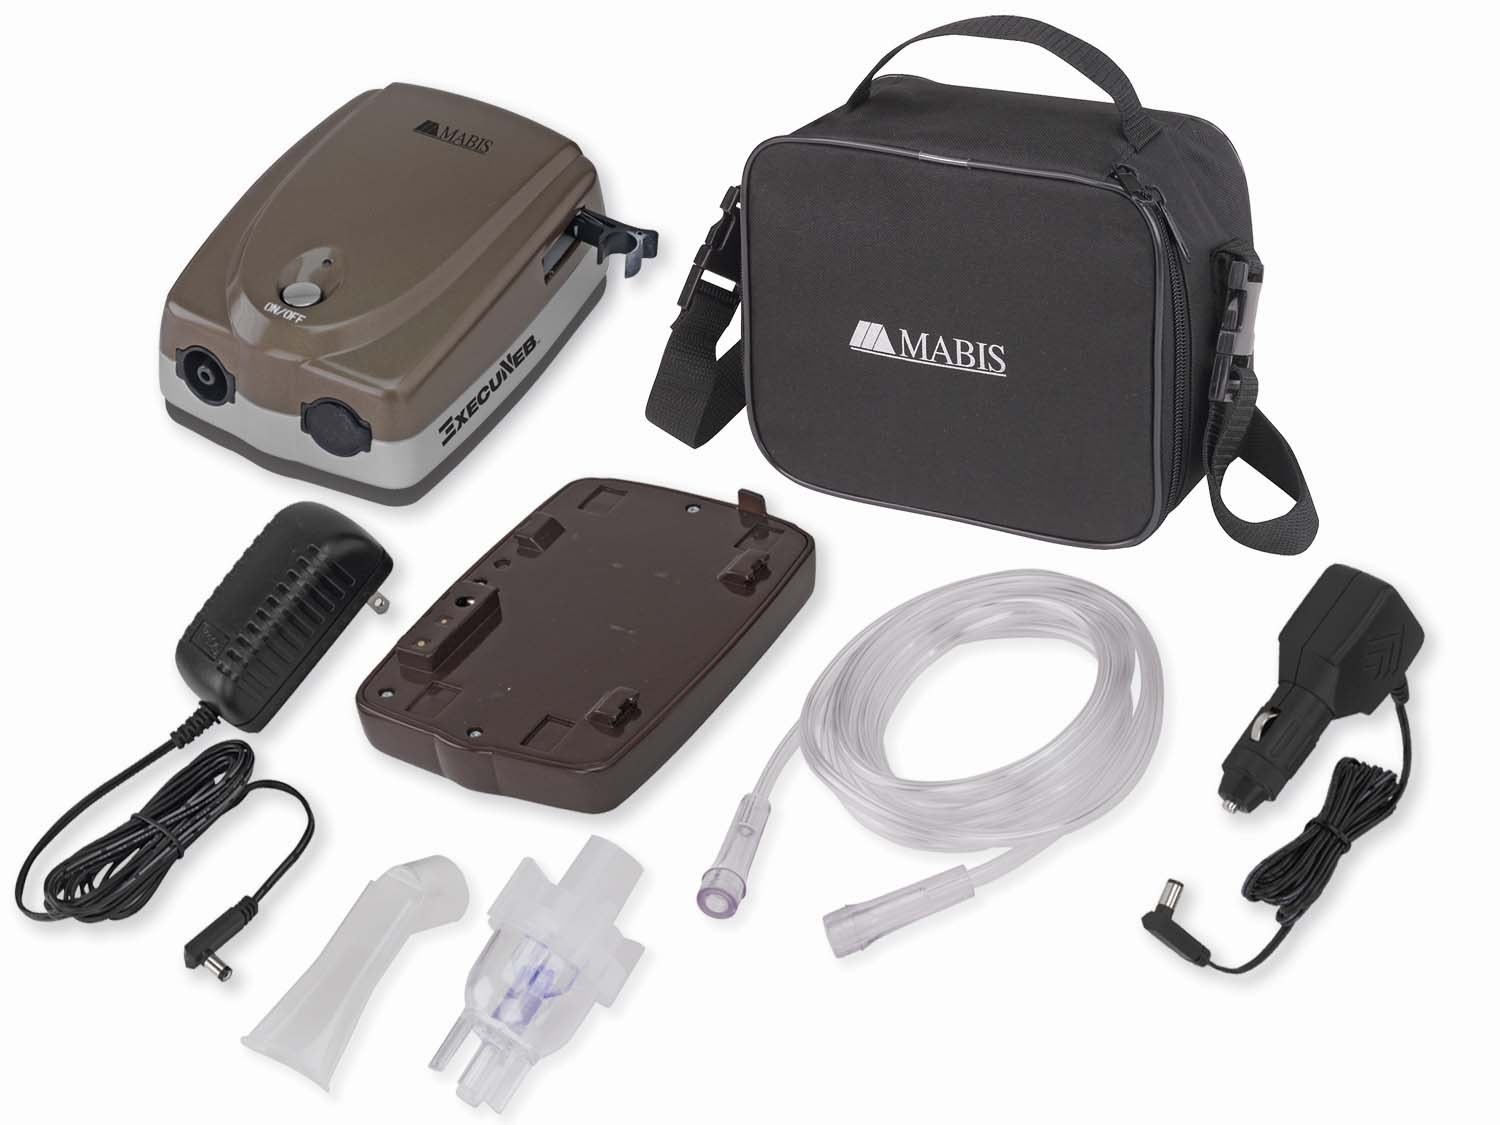 execuneb-portable-compressor-nebulizer-kit-40-146-000-lr-2.jpg